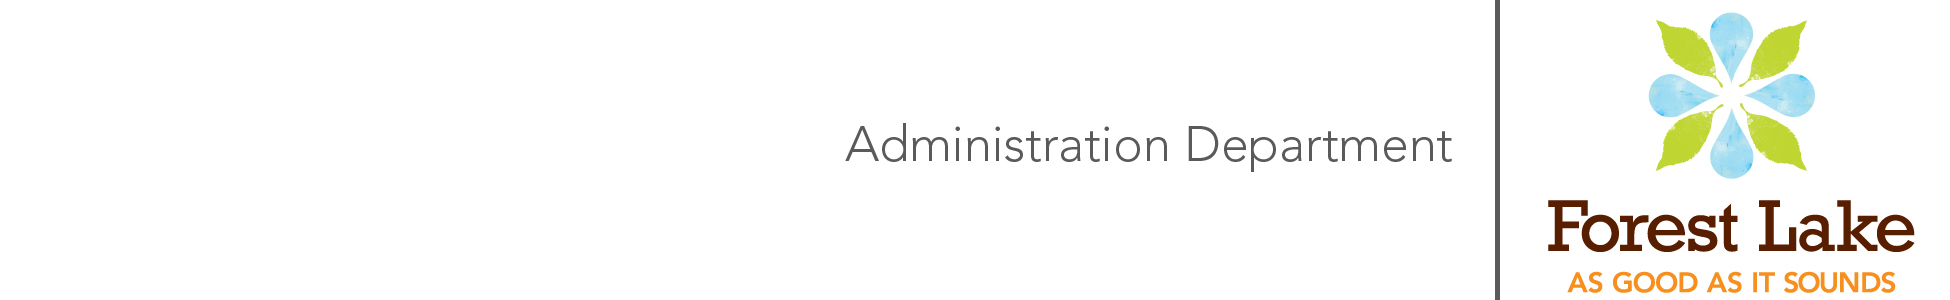 Image of Adminstration Letterhead